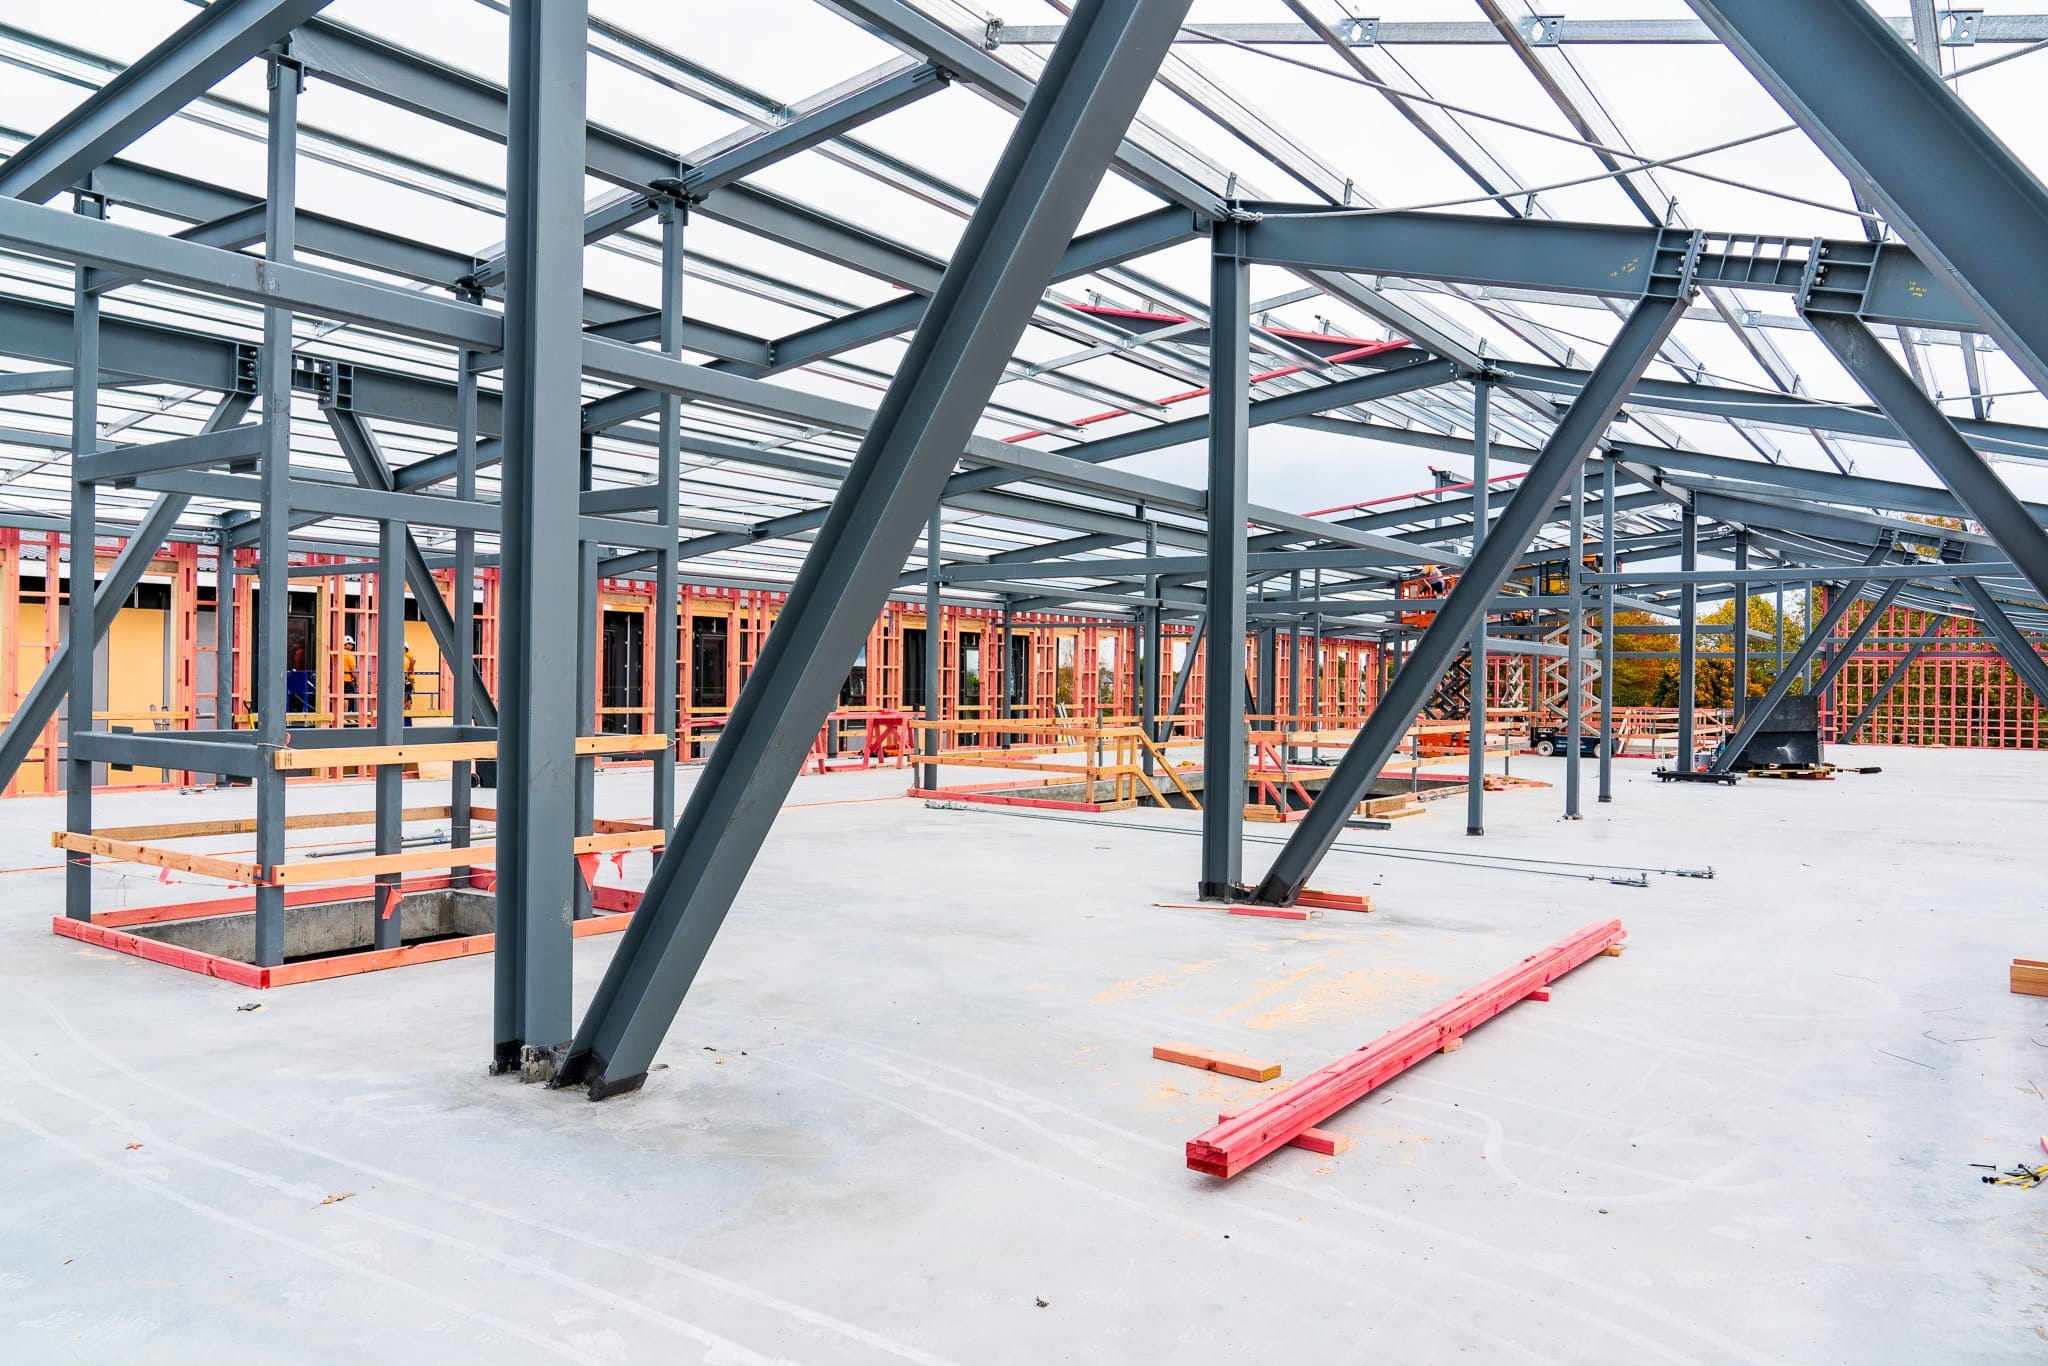 vip_structural_steel_linwood_college_23:4:21_small_100